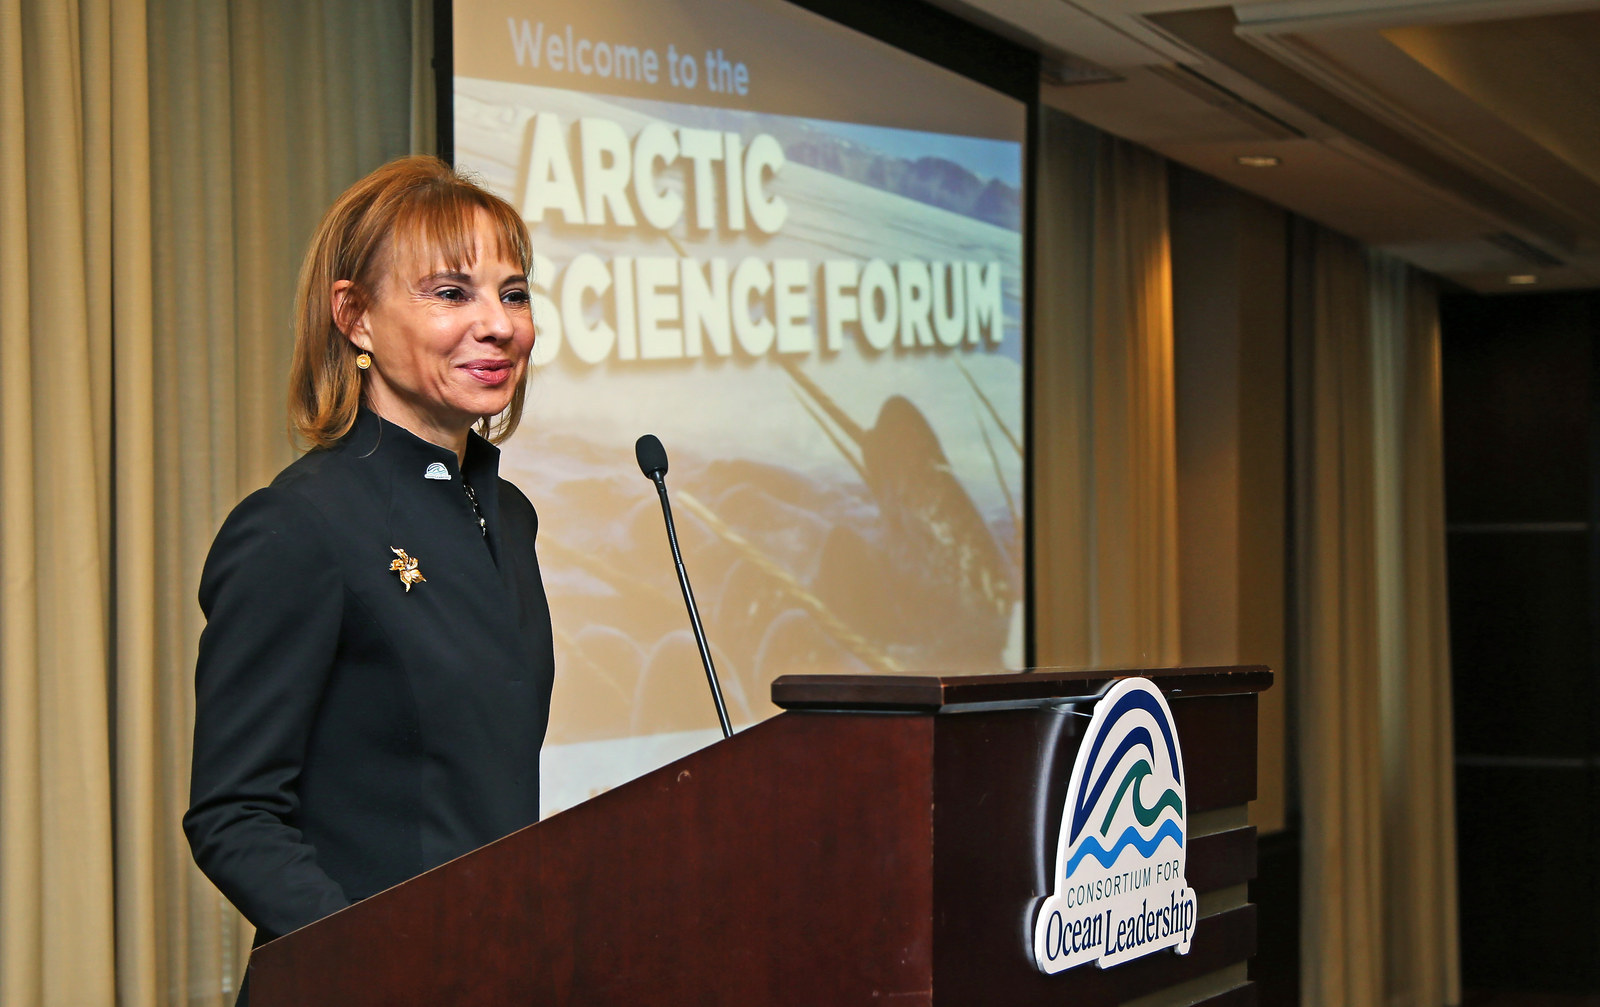 Meet The Woman Whose Two-Word Catchphrase Made the Military Care About Climate